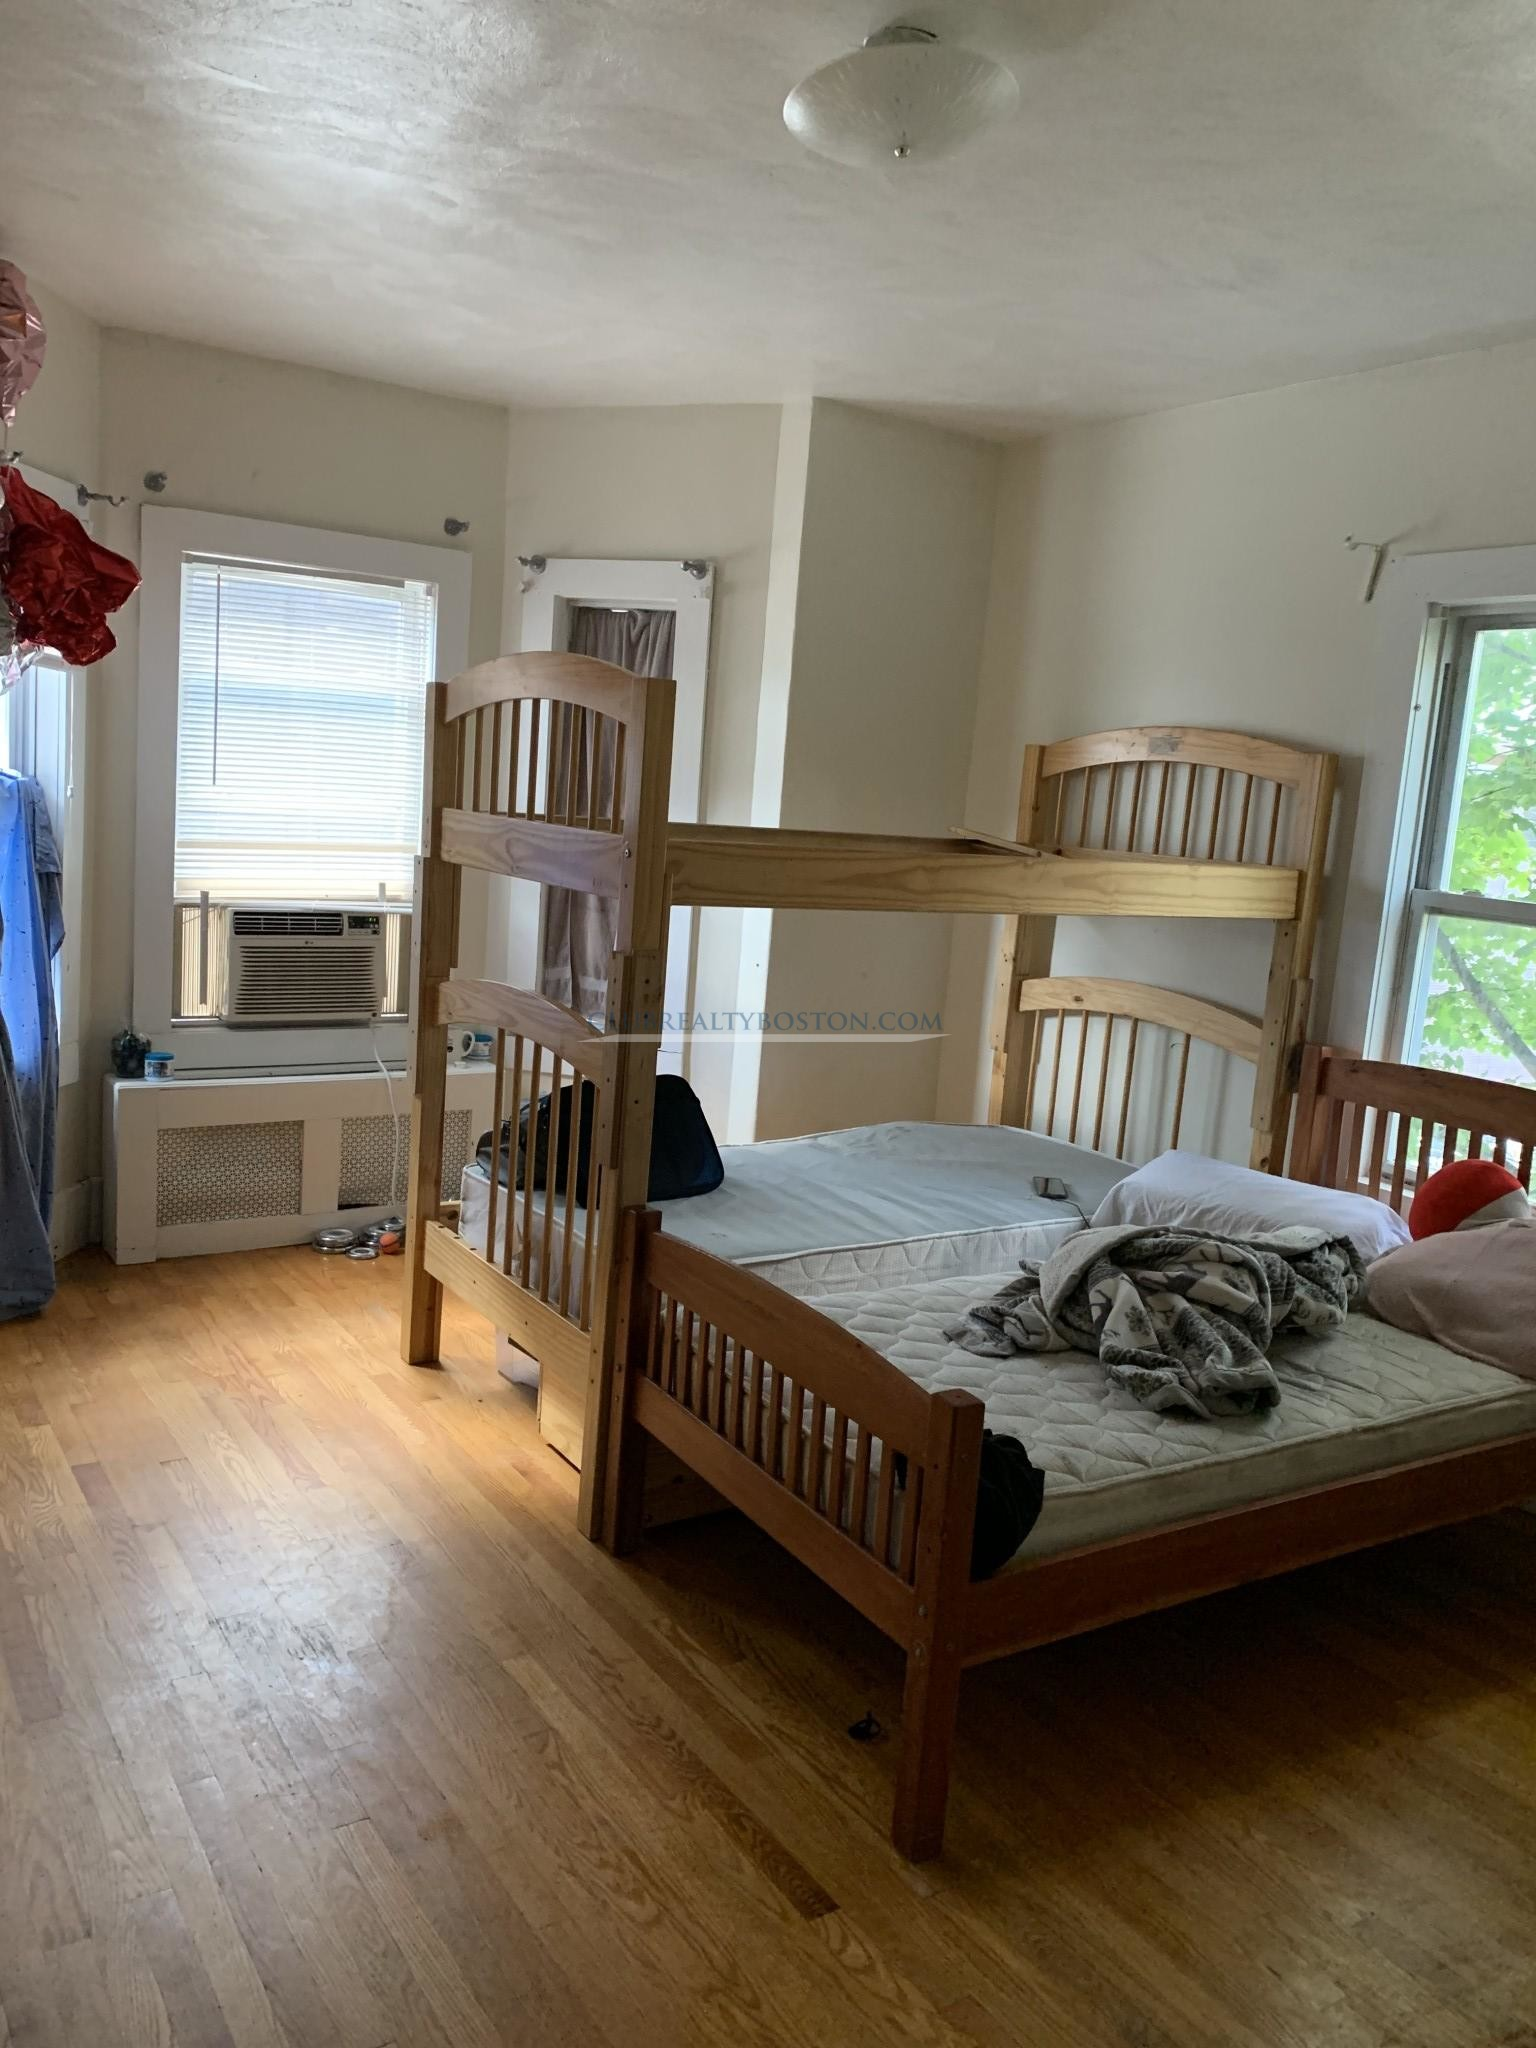 Modern 2 bed in Allston Village with Granite counters & Porch! New til